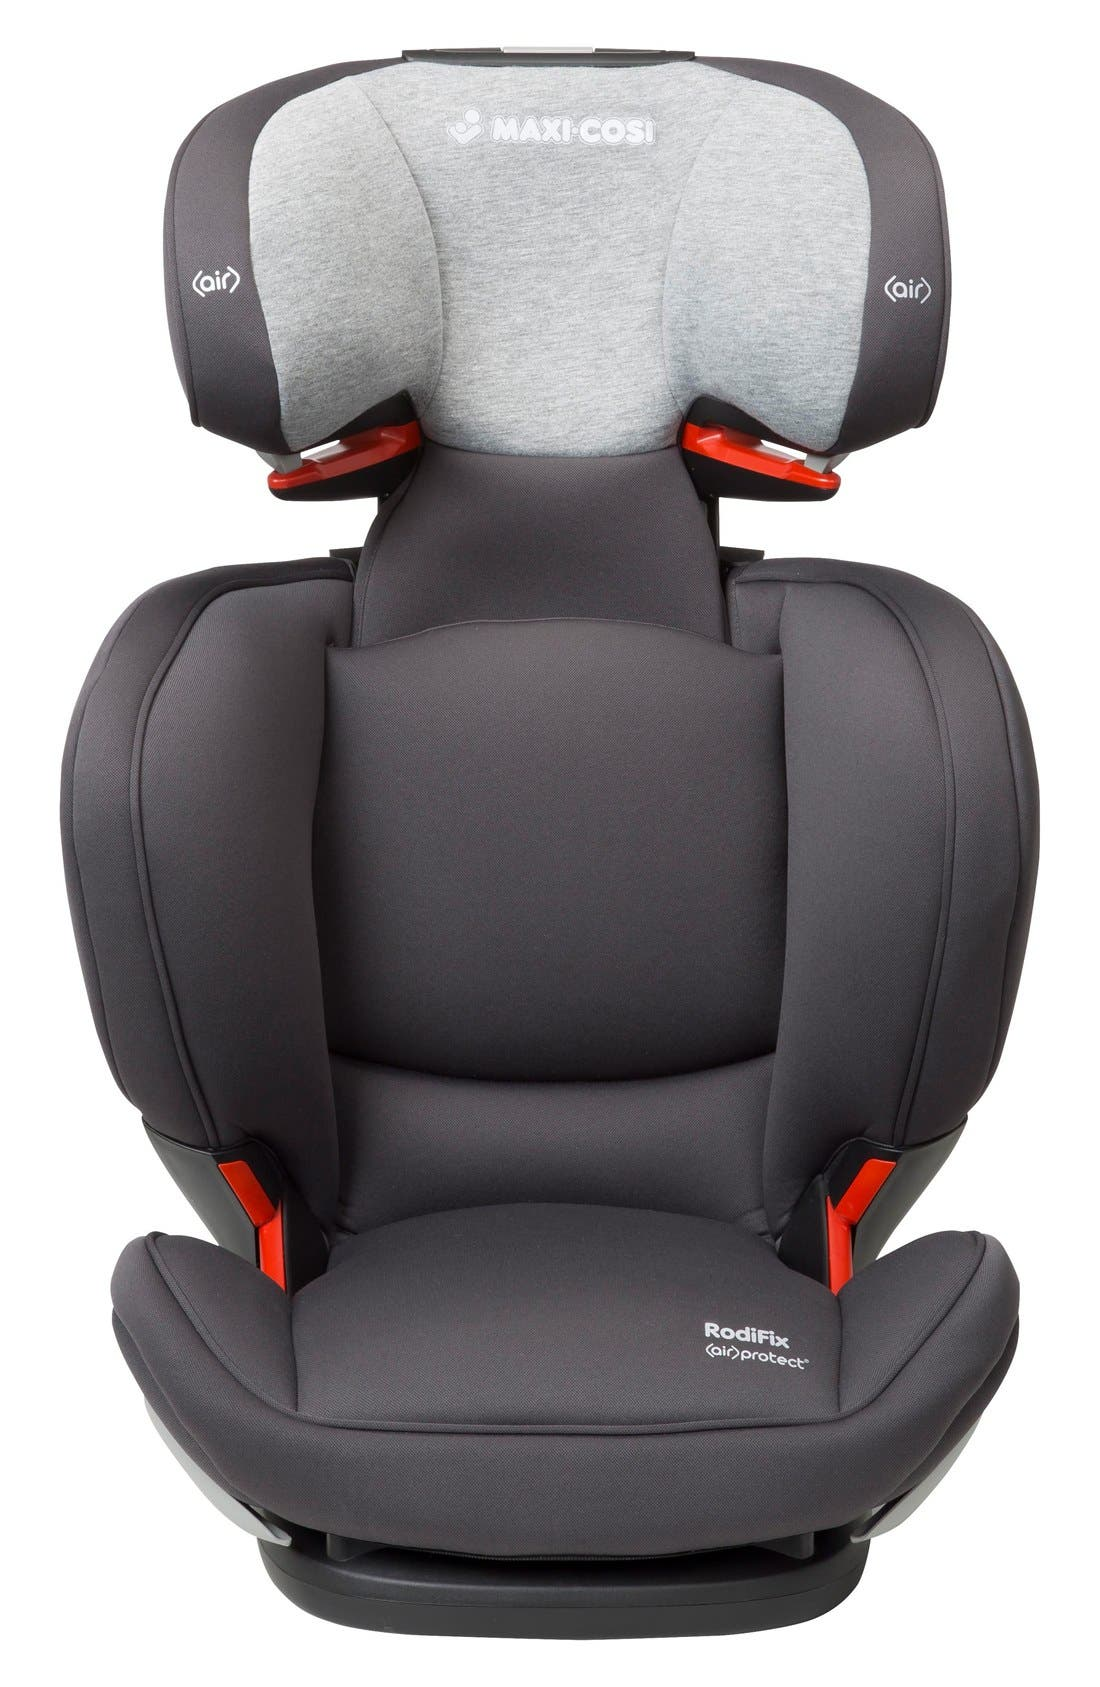 Alternate Image 1 Selected - Maxi-Cosi® RodiFix Booster Car Seat